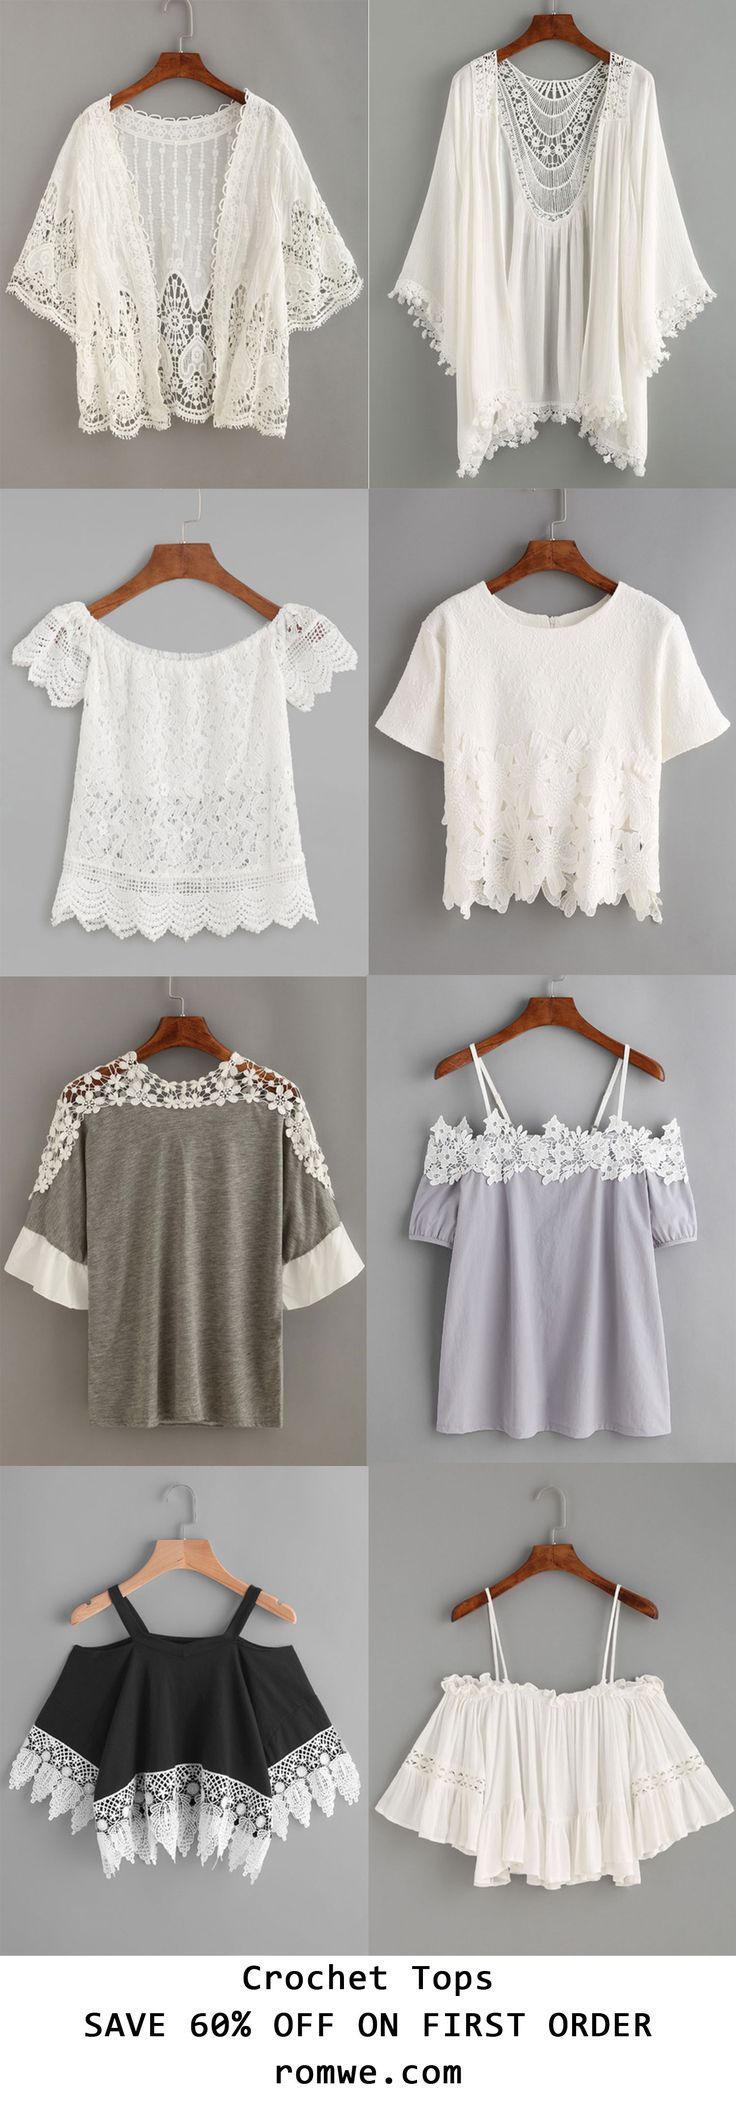 Crochet Tops Collection 2017 - romwe.com